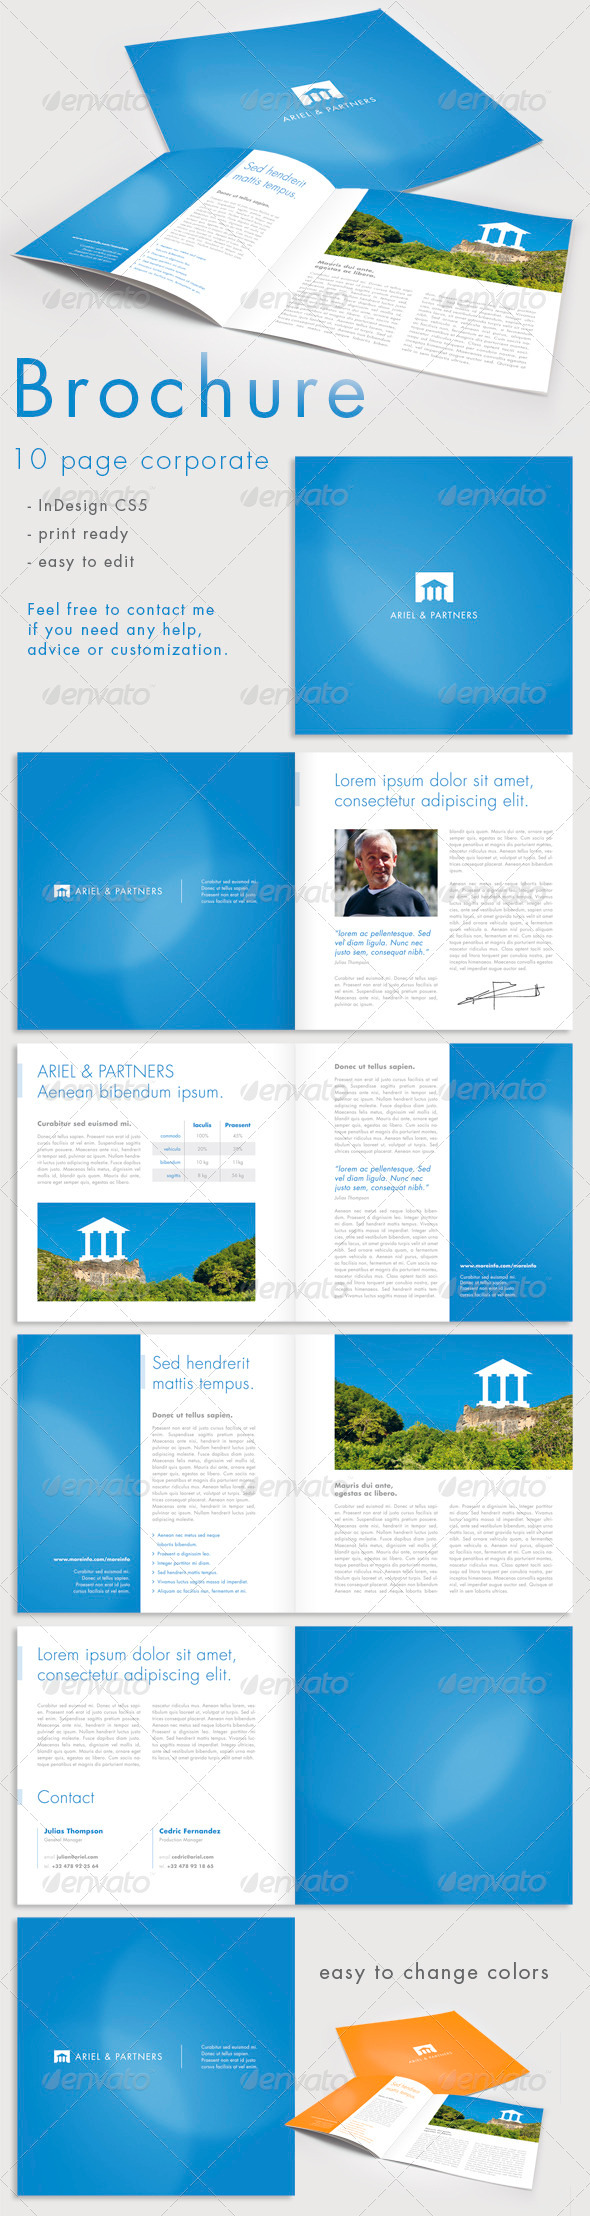 10 Page Corporate Brochure - Print Ad Templates